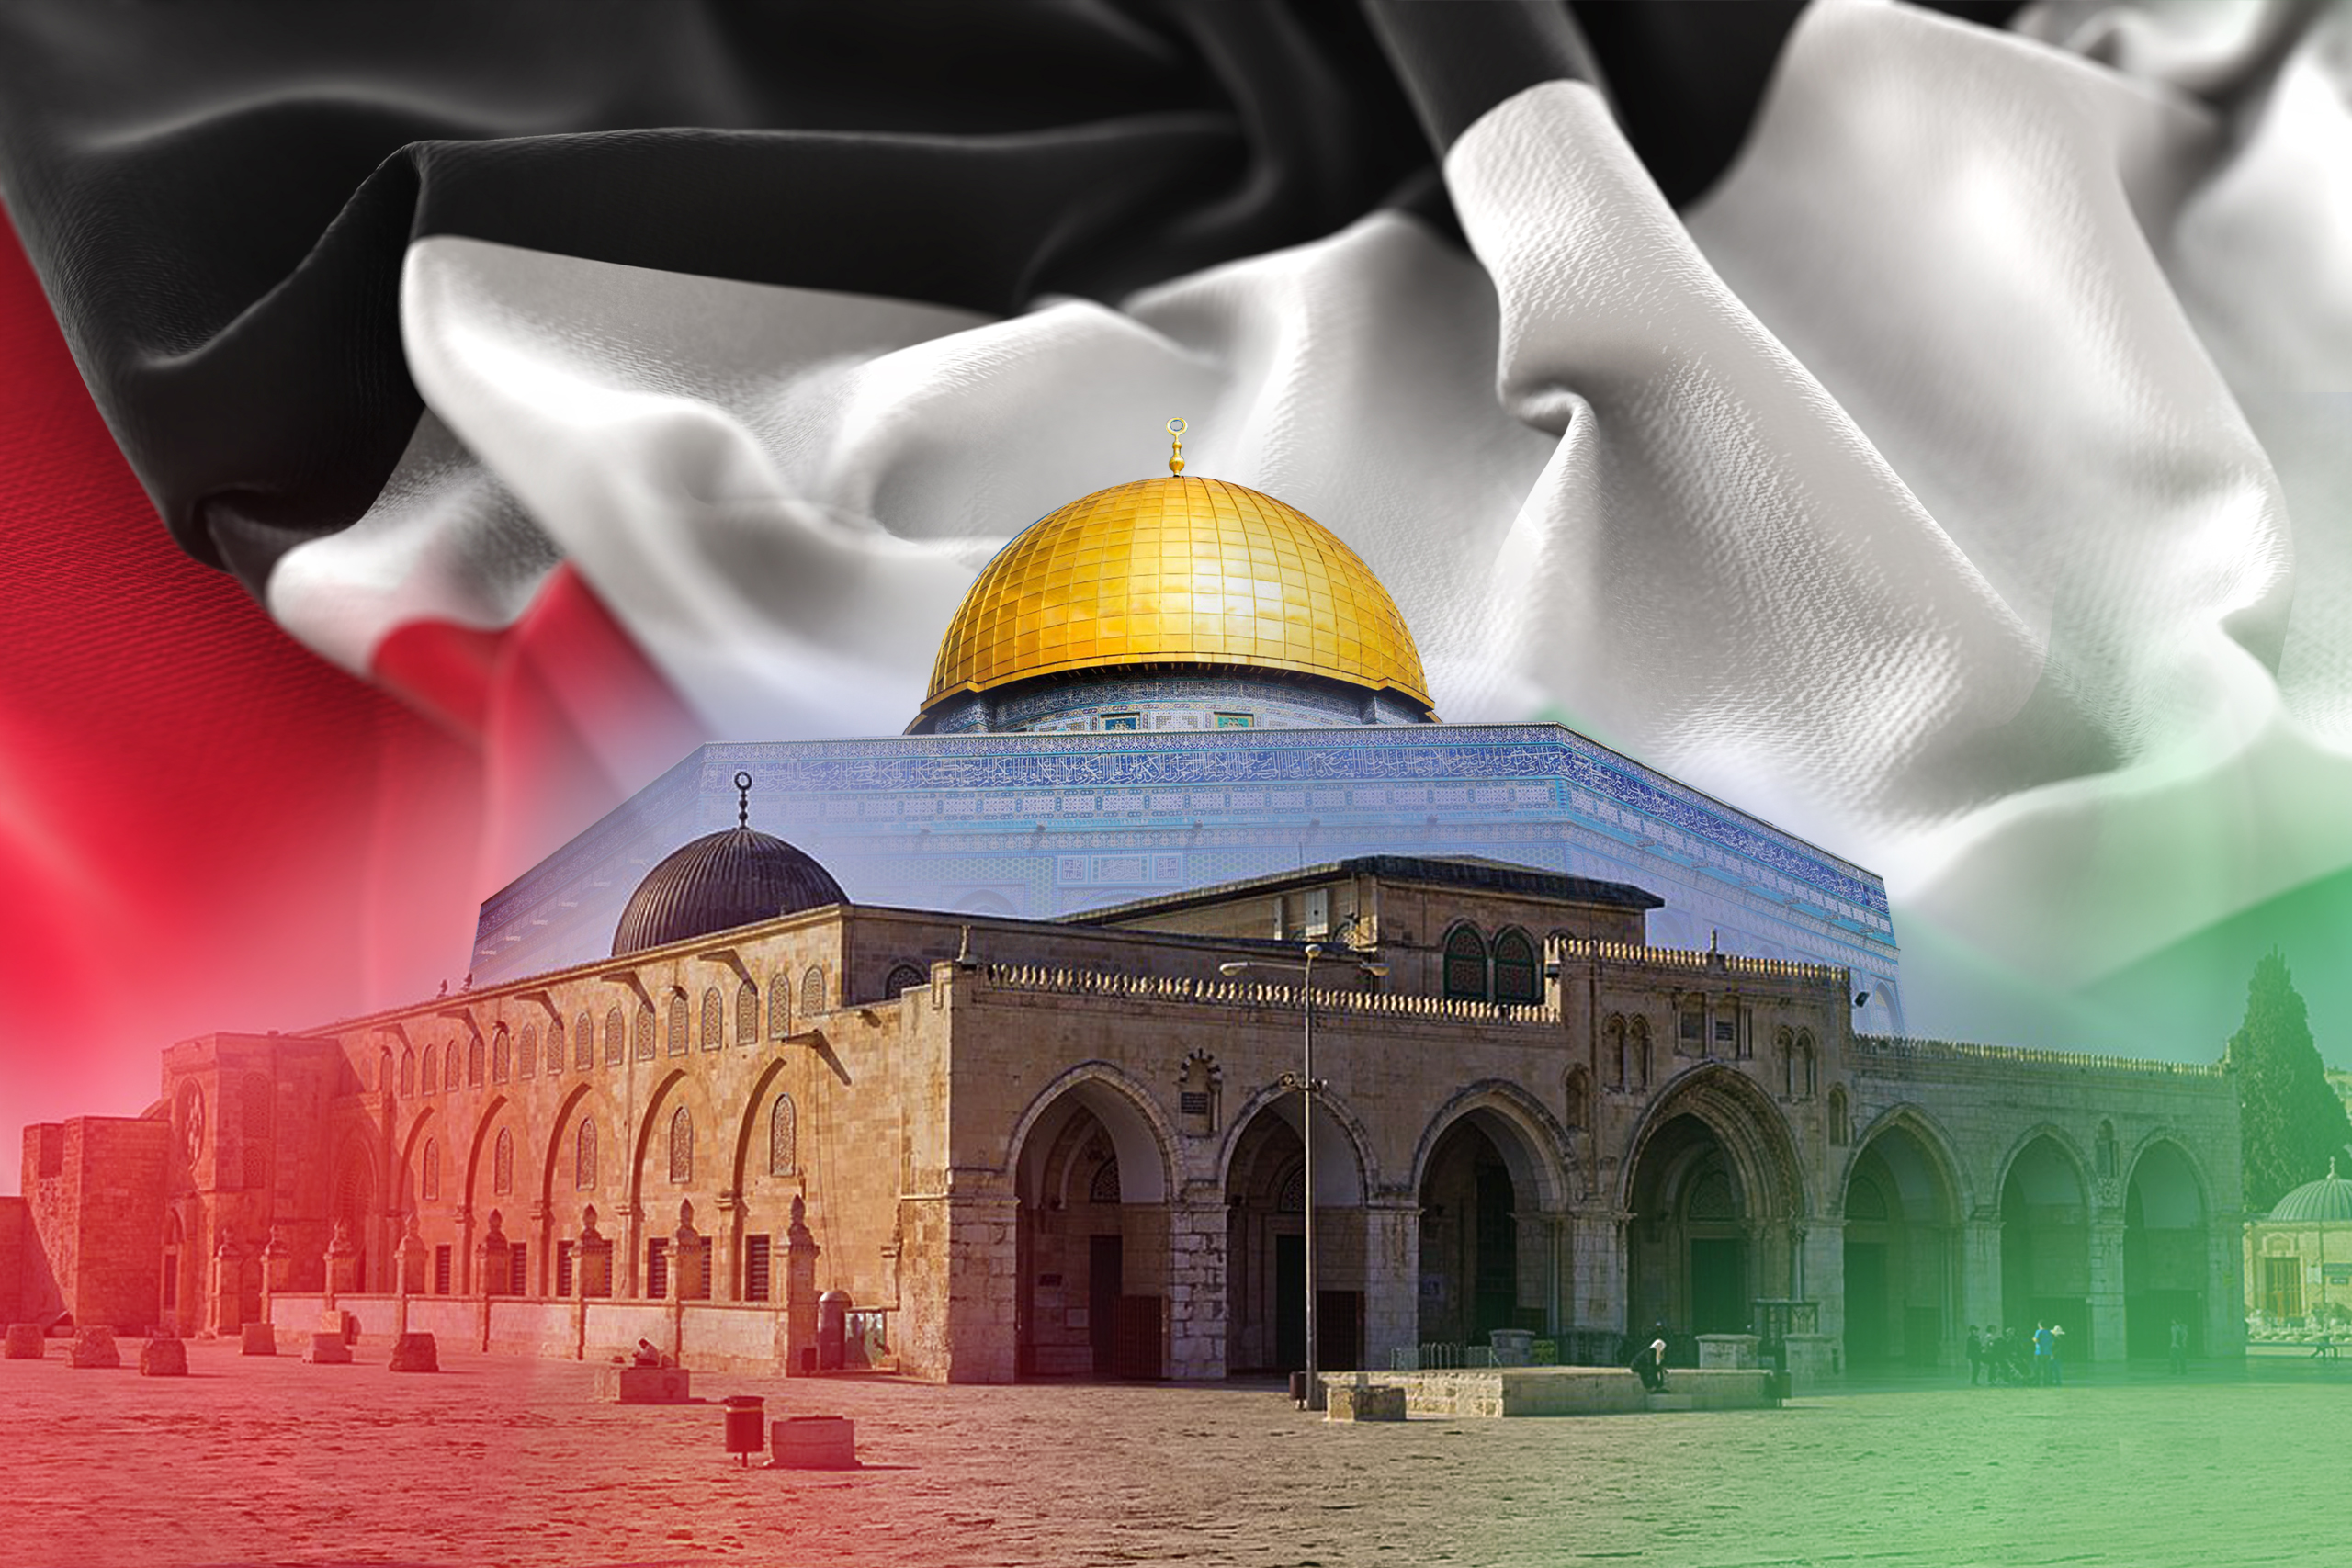 History and Virtues of Al-Aqsa Course Cover Image